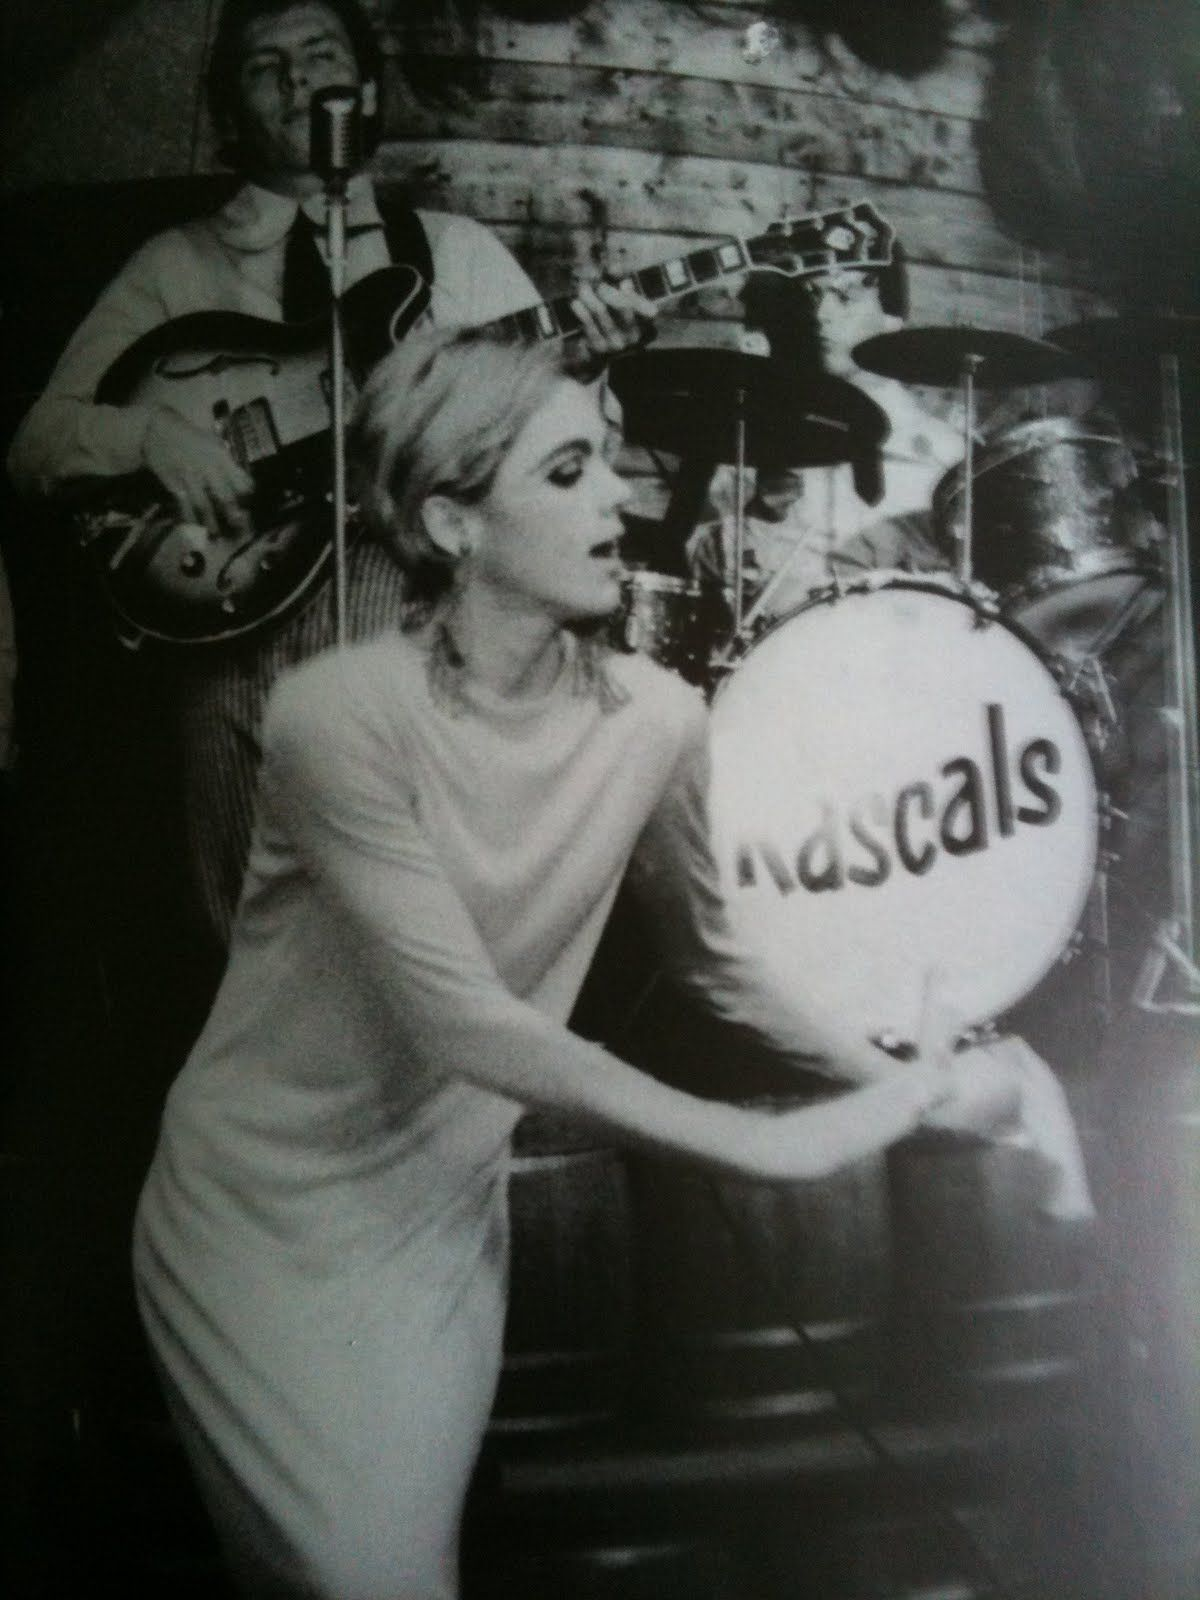 Edie Sedgwick Quotes Edie Sedgwick Dancing To The Rascals 1965Photofred